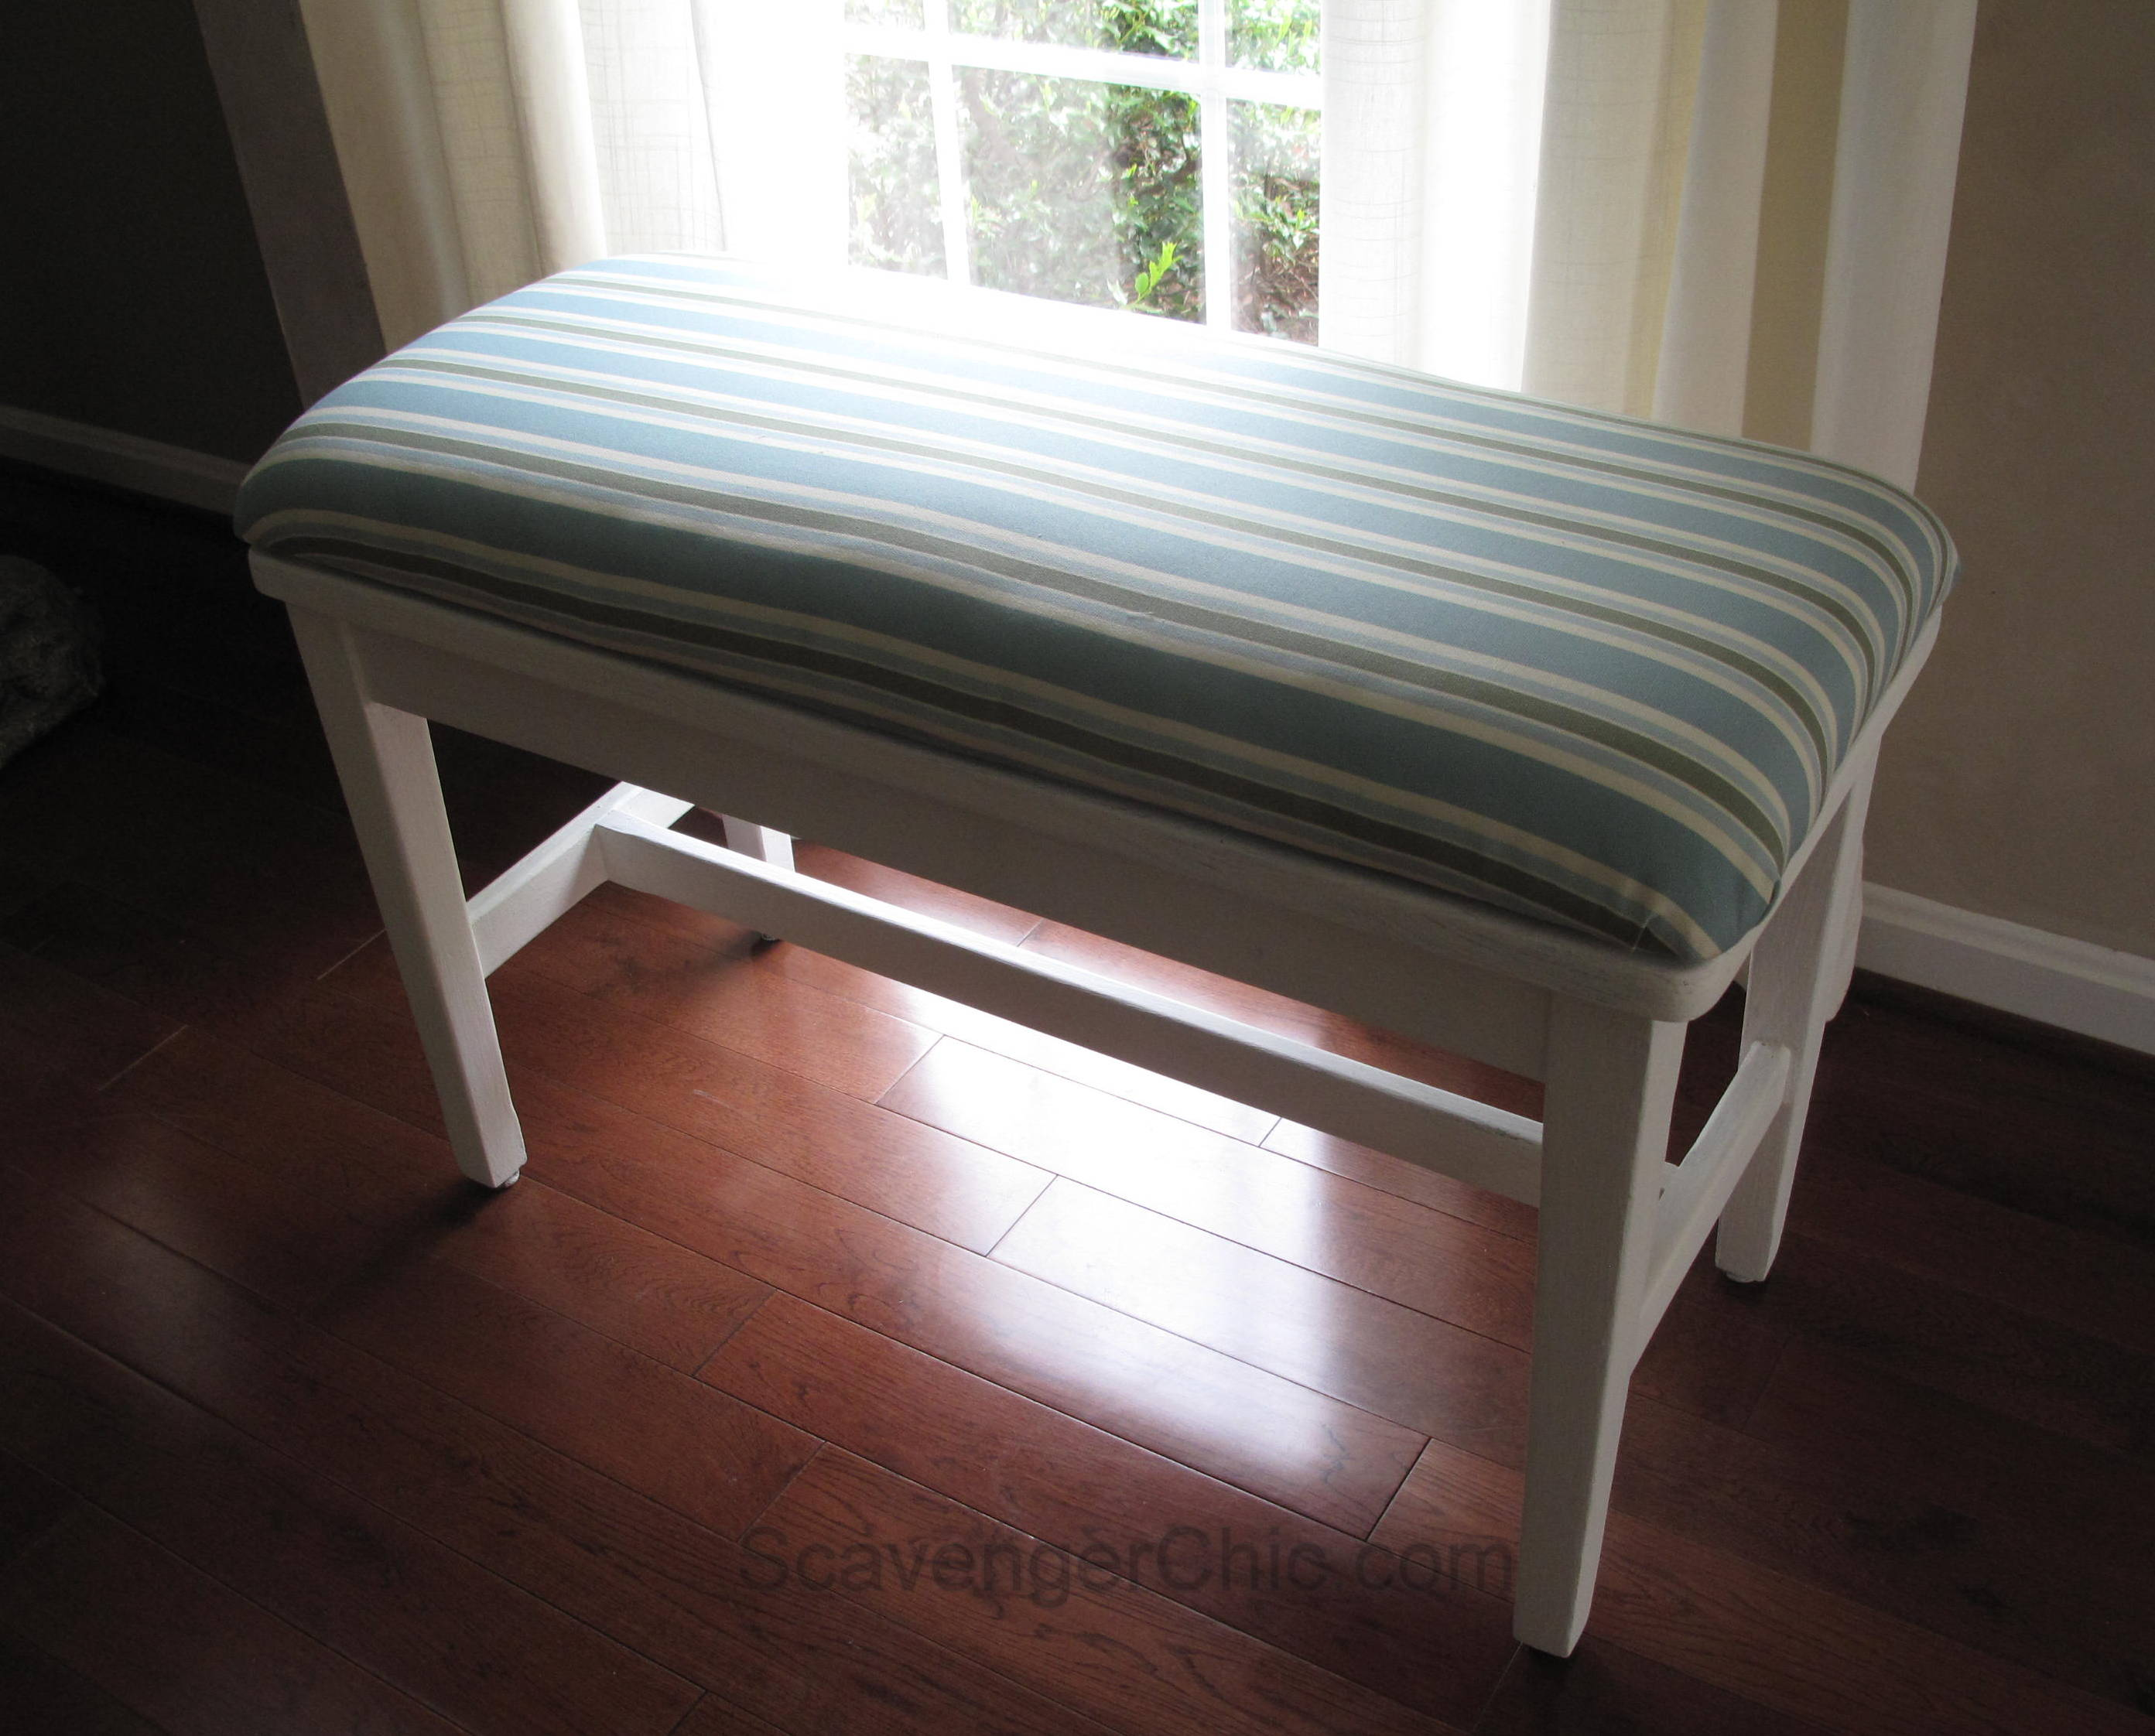 easy no sew padded seat cover scavenger chic. Black Bedroom Furniture Sets. Home Design Ideas